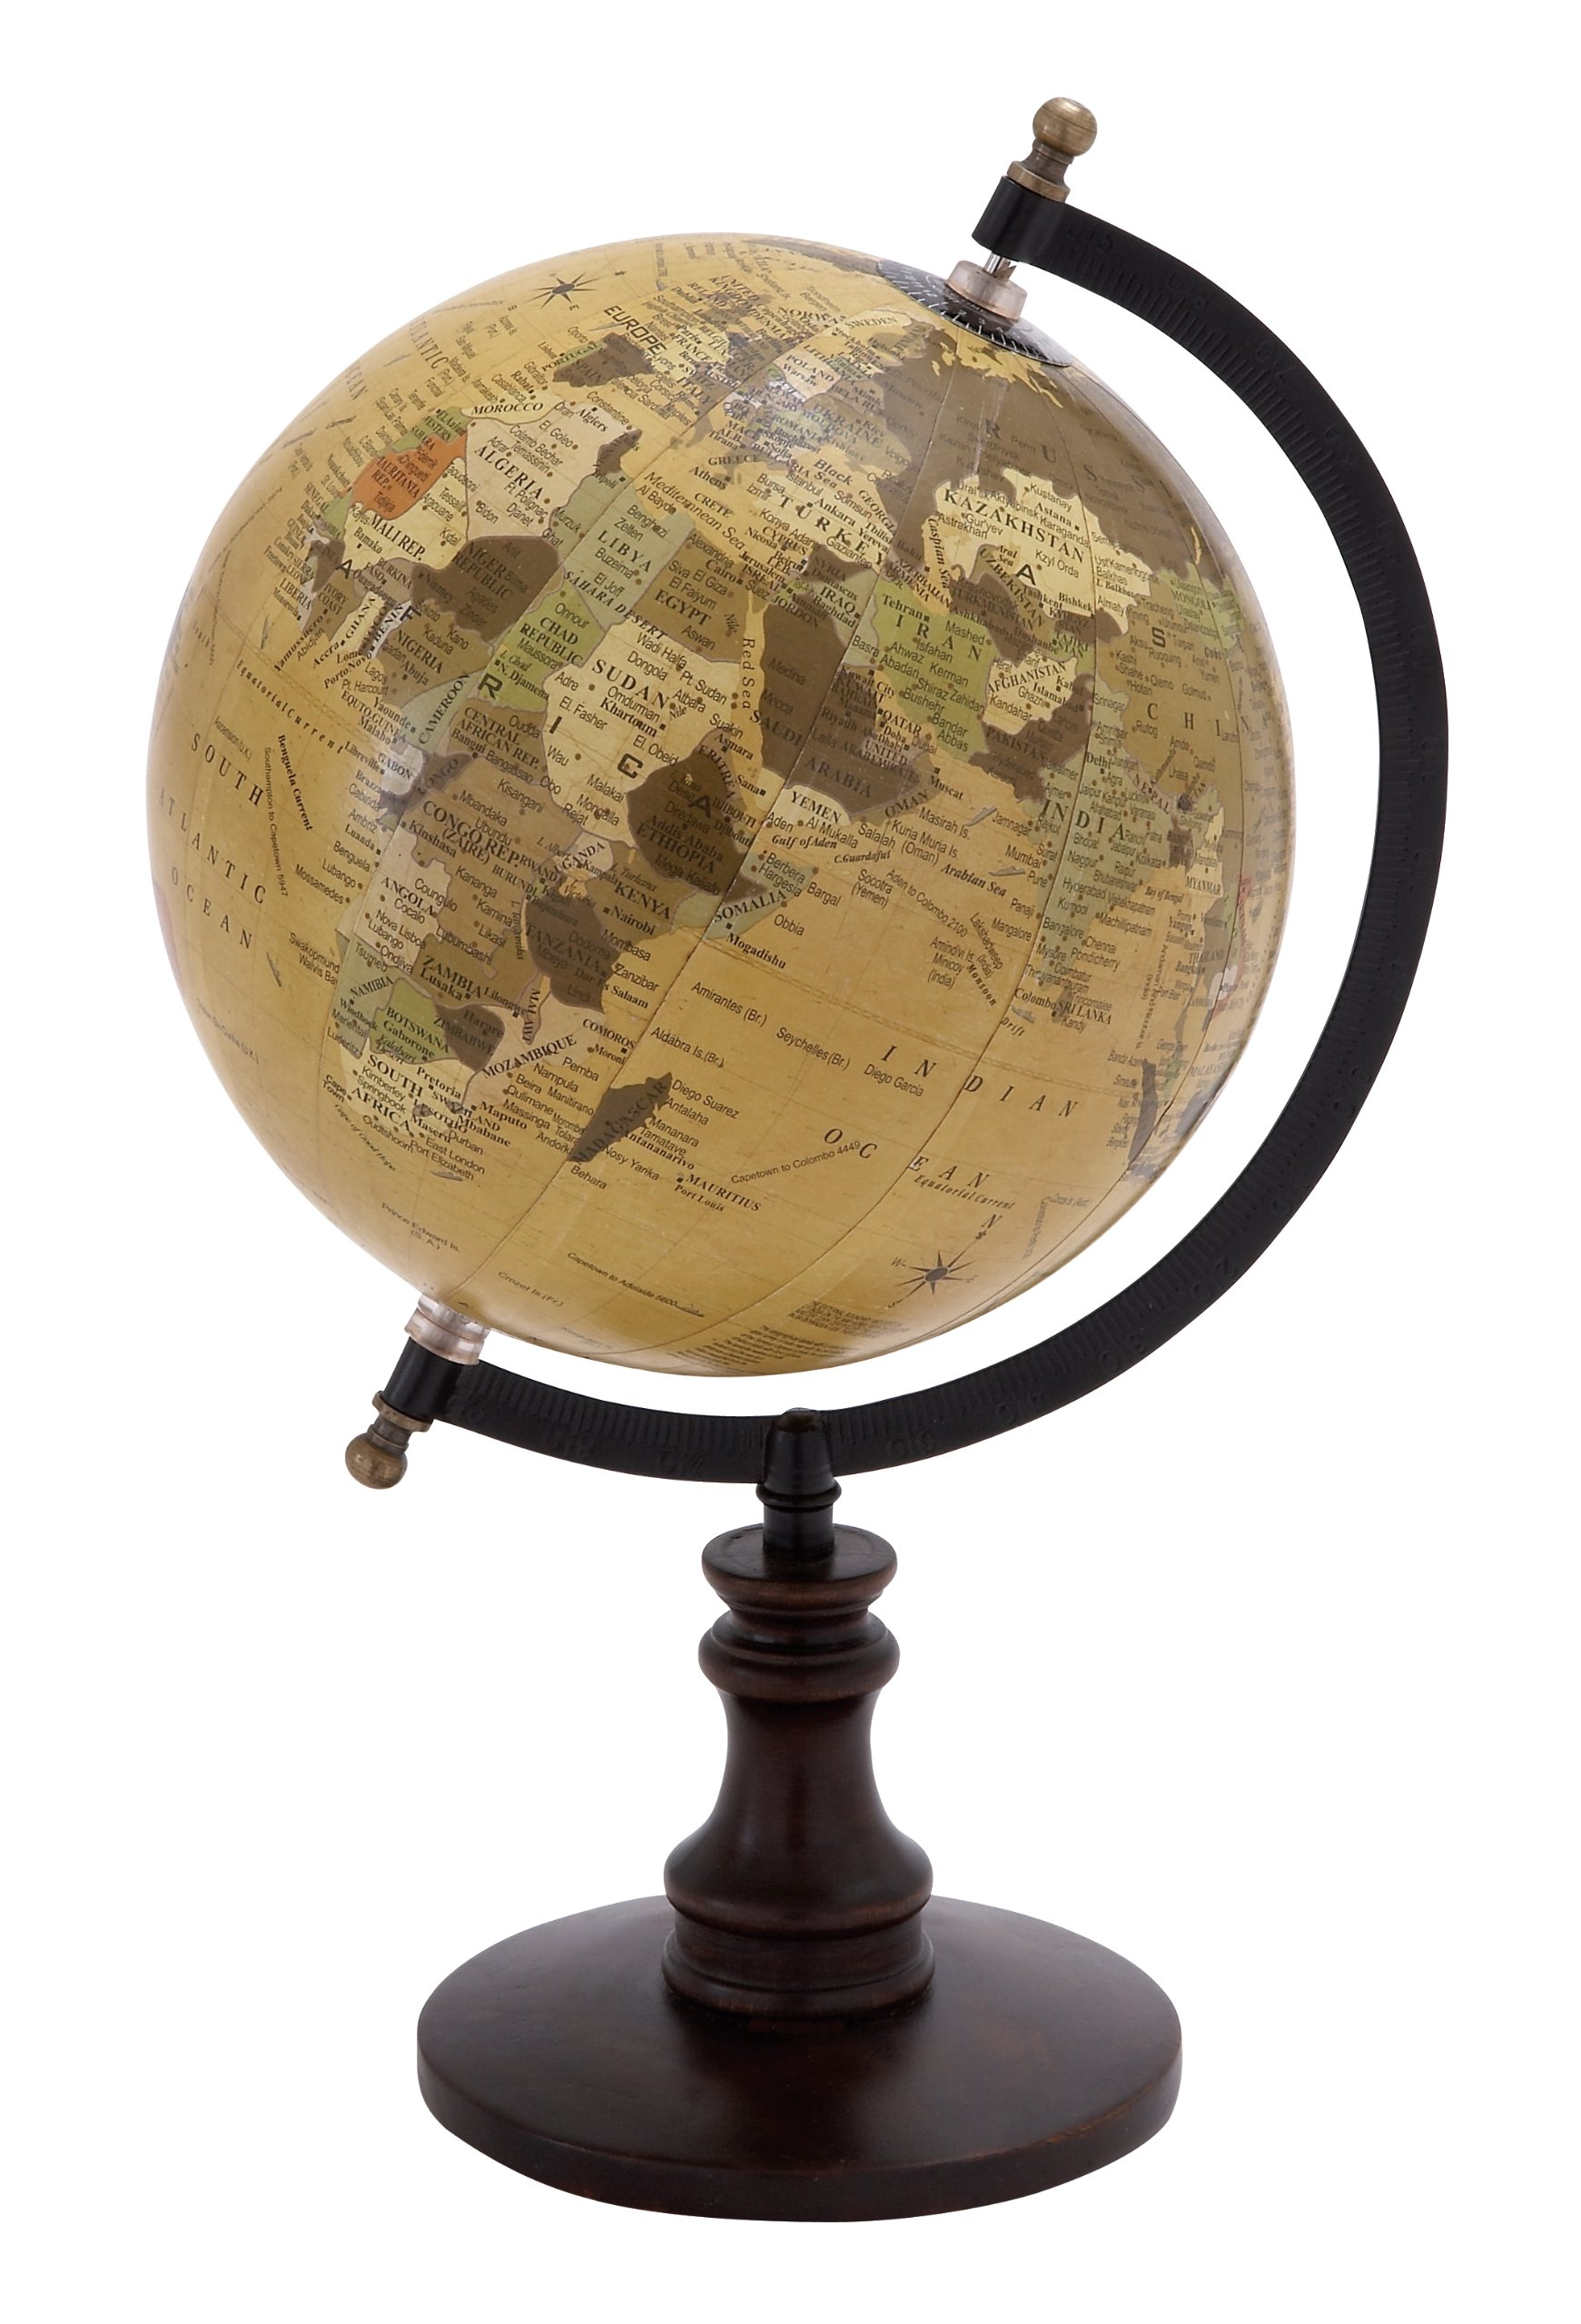 Deco 79 Globe with Metal & Wooden Details by Deco 79